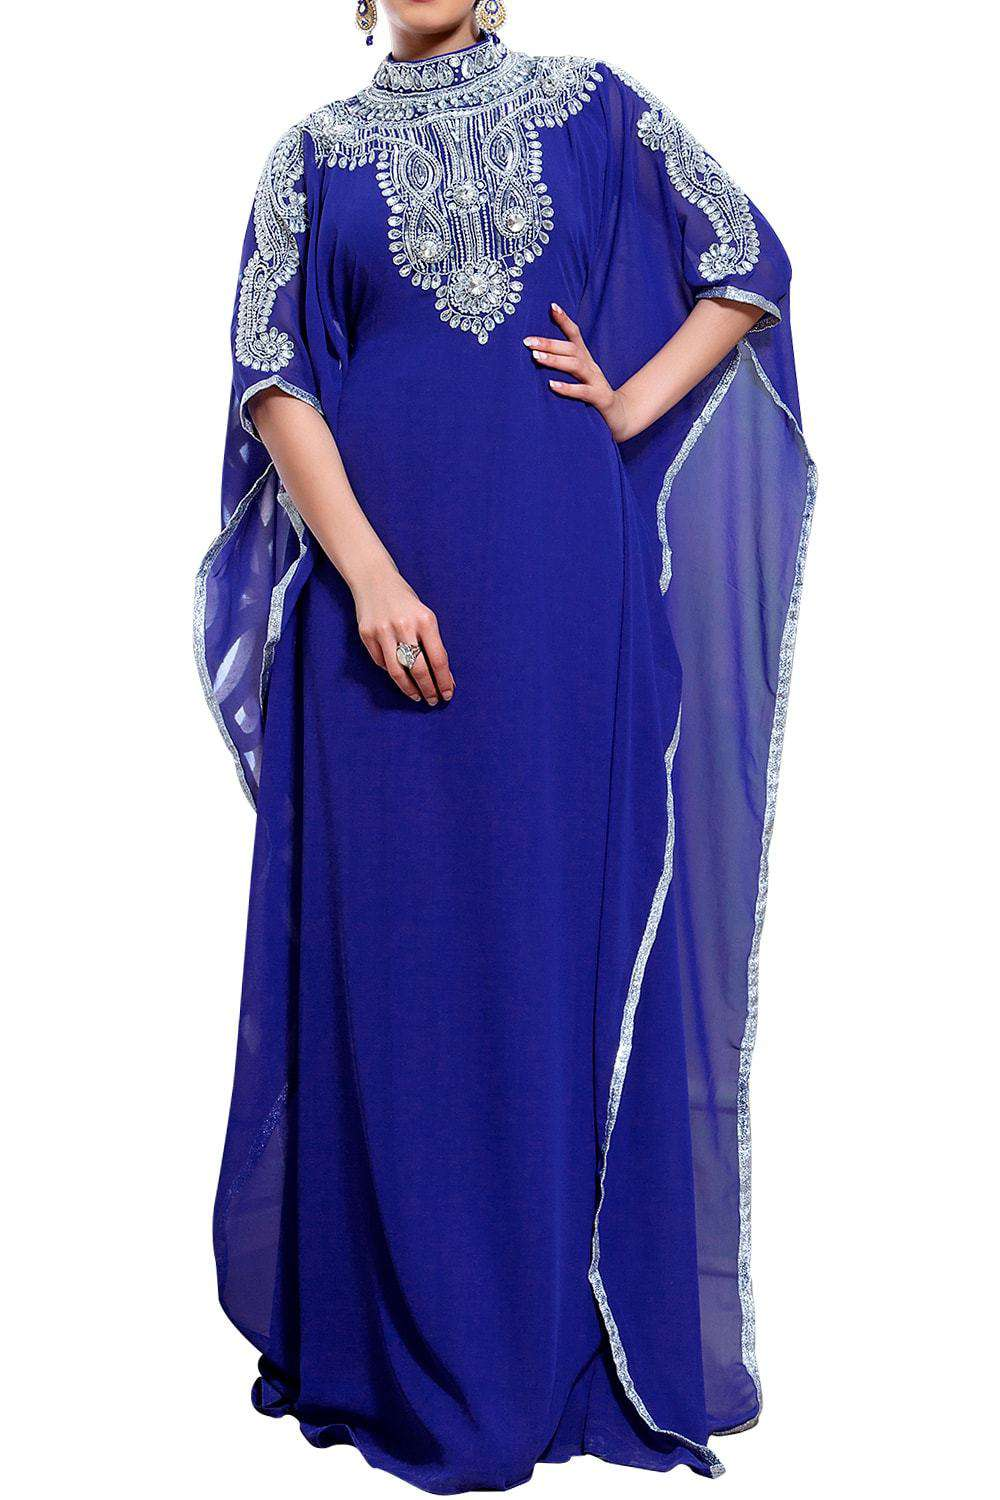 Chic Blue Color Designer Hand Crafted Kaftan